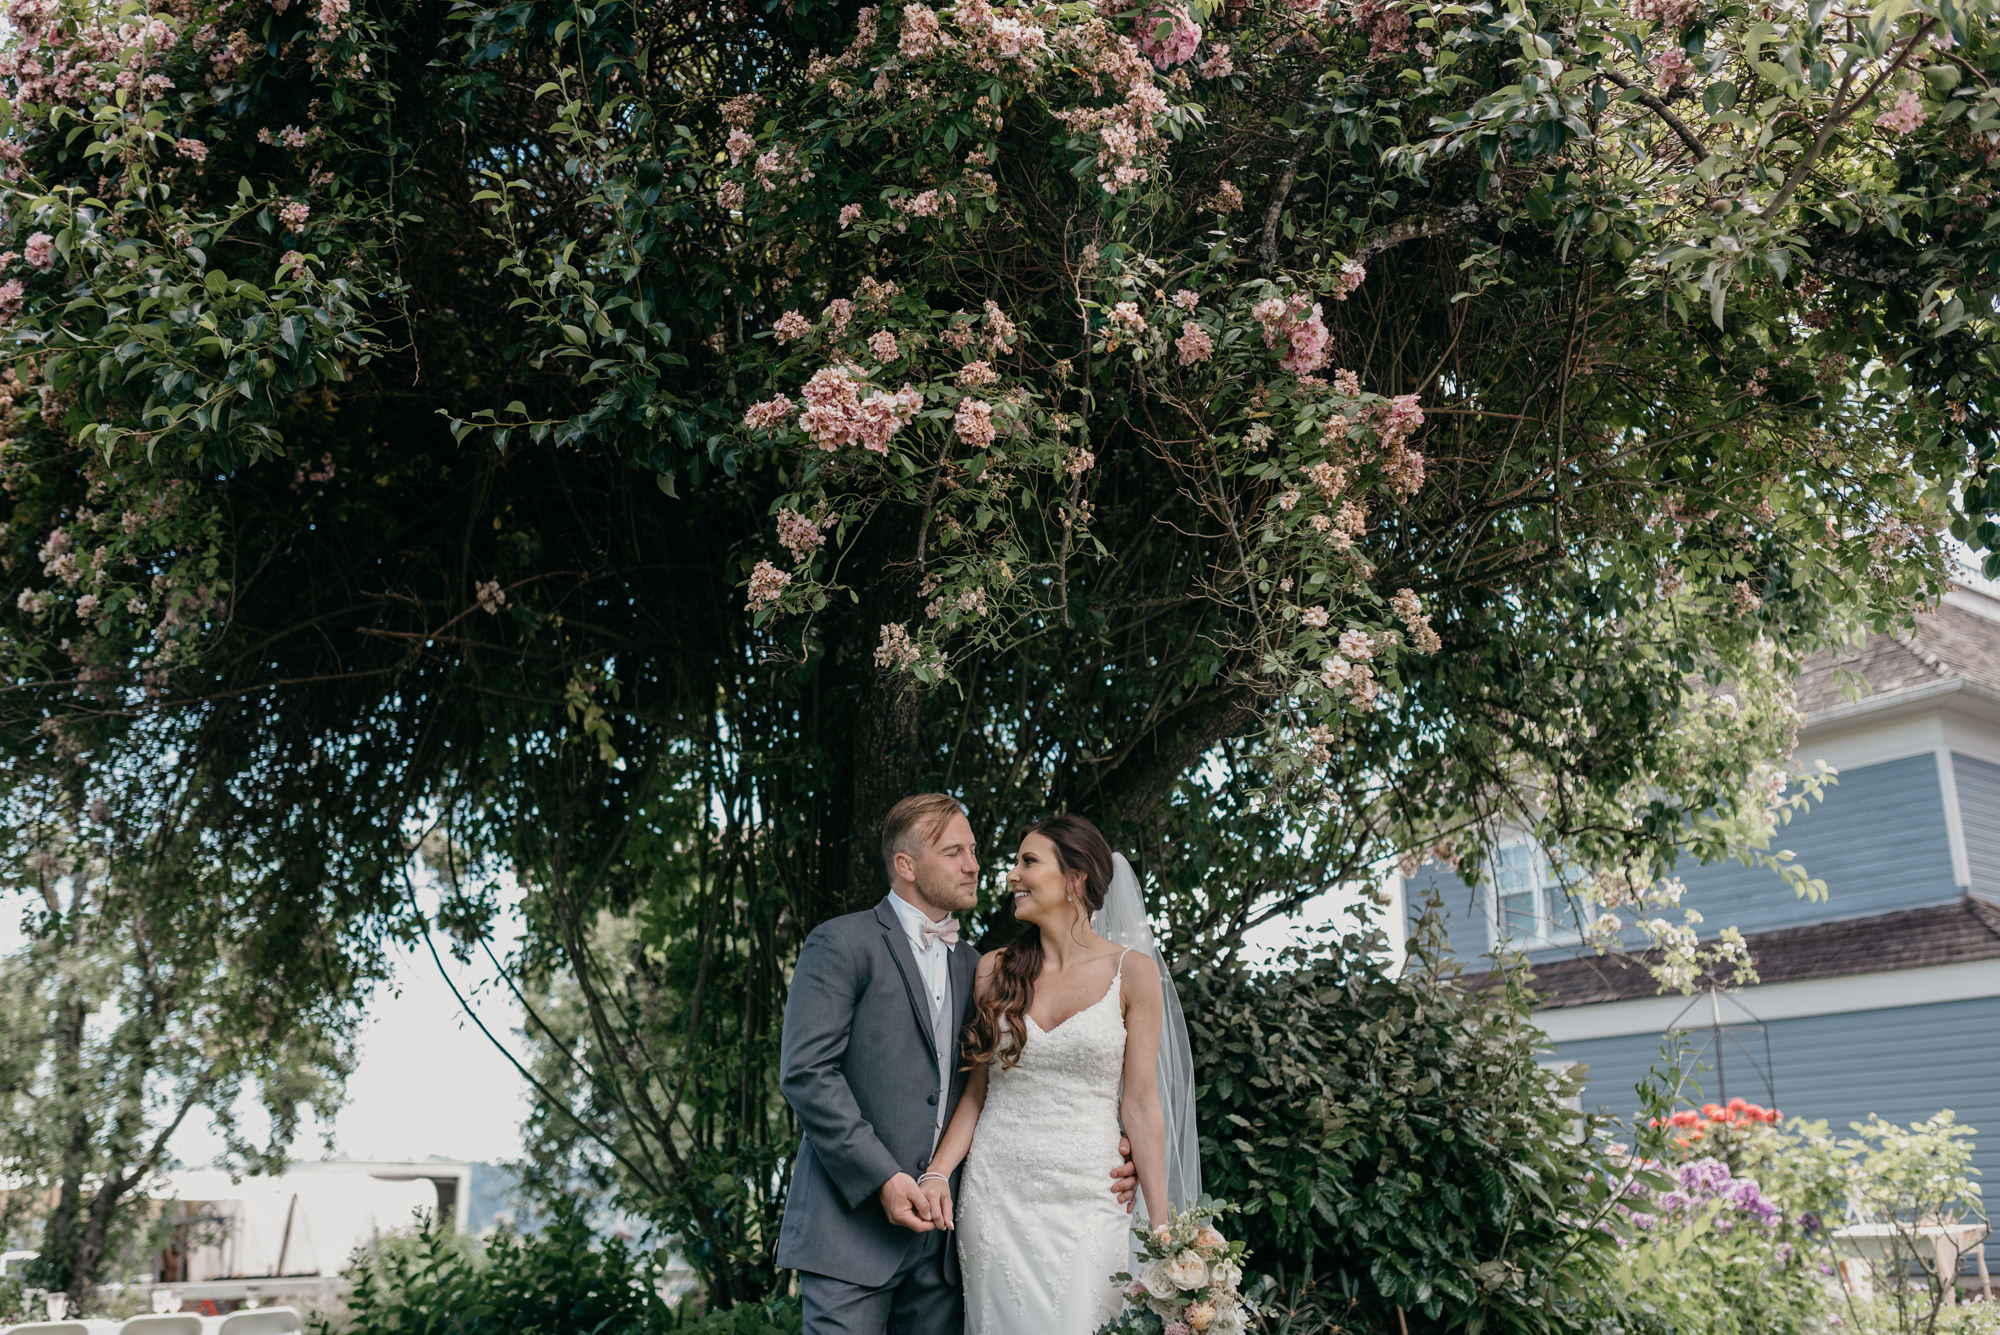 86-lake-oswego-wedding-portland-couple-rose-tree.jpg